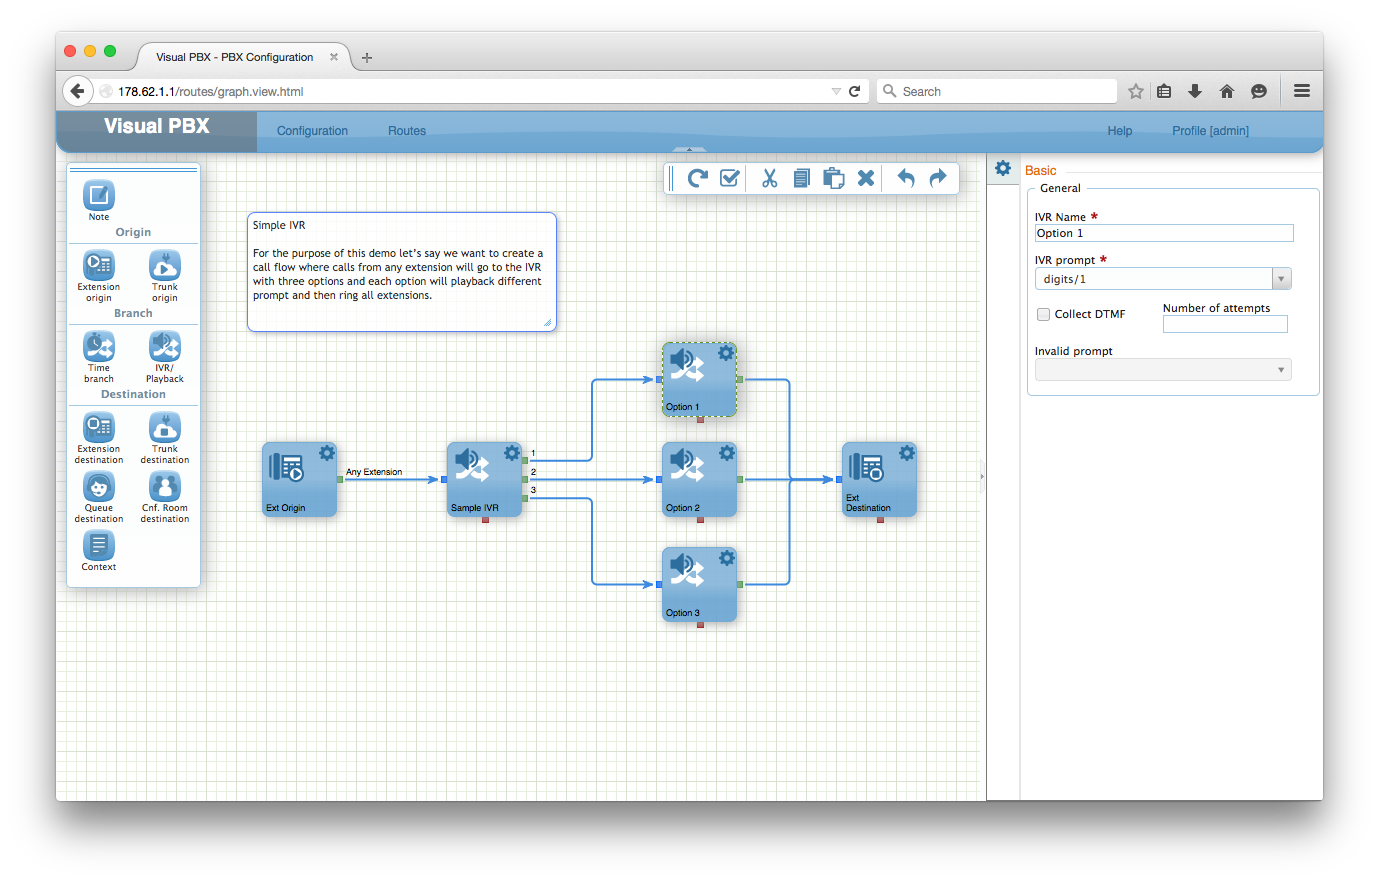 VisualPBX routing view, more details